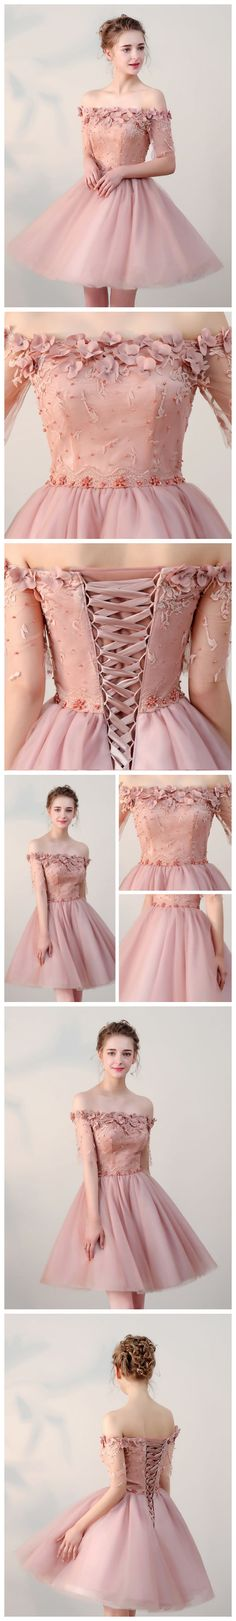 Elegant Prom Dresses, Chic A-Line Off-the-shoulder Sleeveless Short pink Homecoming Dress With Appliques Shop for La Femme prom dresses. Elegant long designer gowns, sexy cocktail dresses, short semi-formal dresses, and party dresses. Grad Dresses, Cheap Prom Dresses, Homecoming Dresses, Evening Dresses, Short Dresses, Formal Dresses, Quinceanera Dresses, Formal Prom, Dress Long